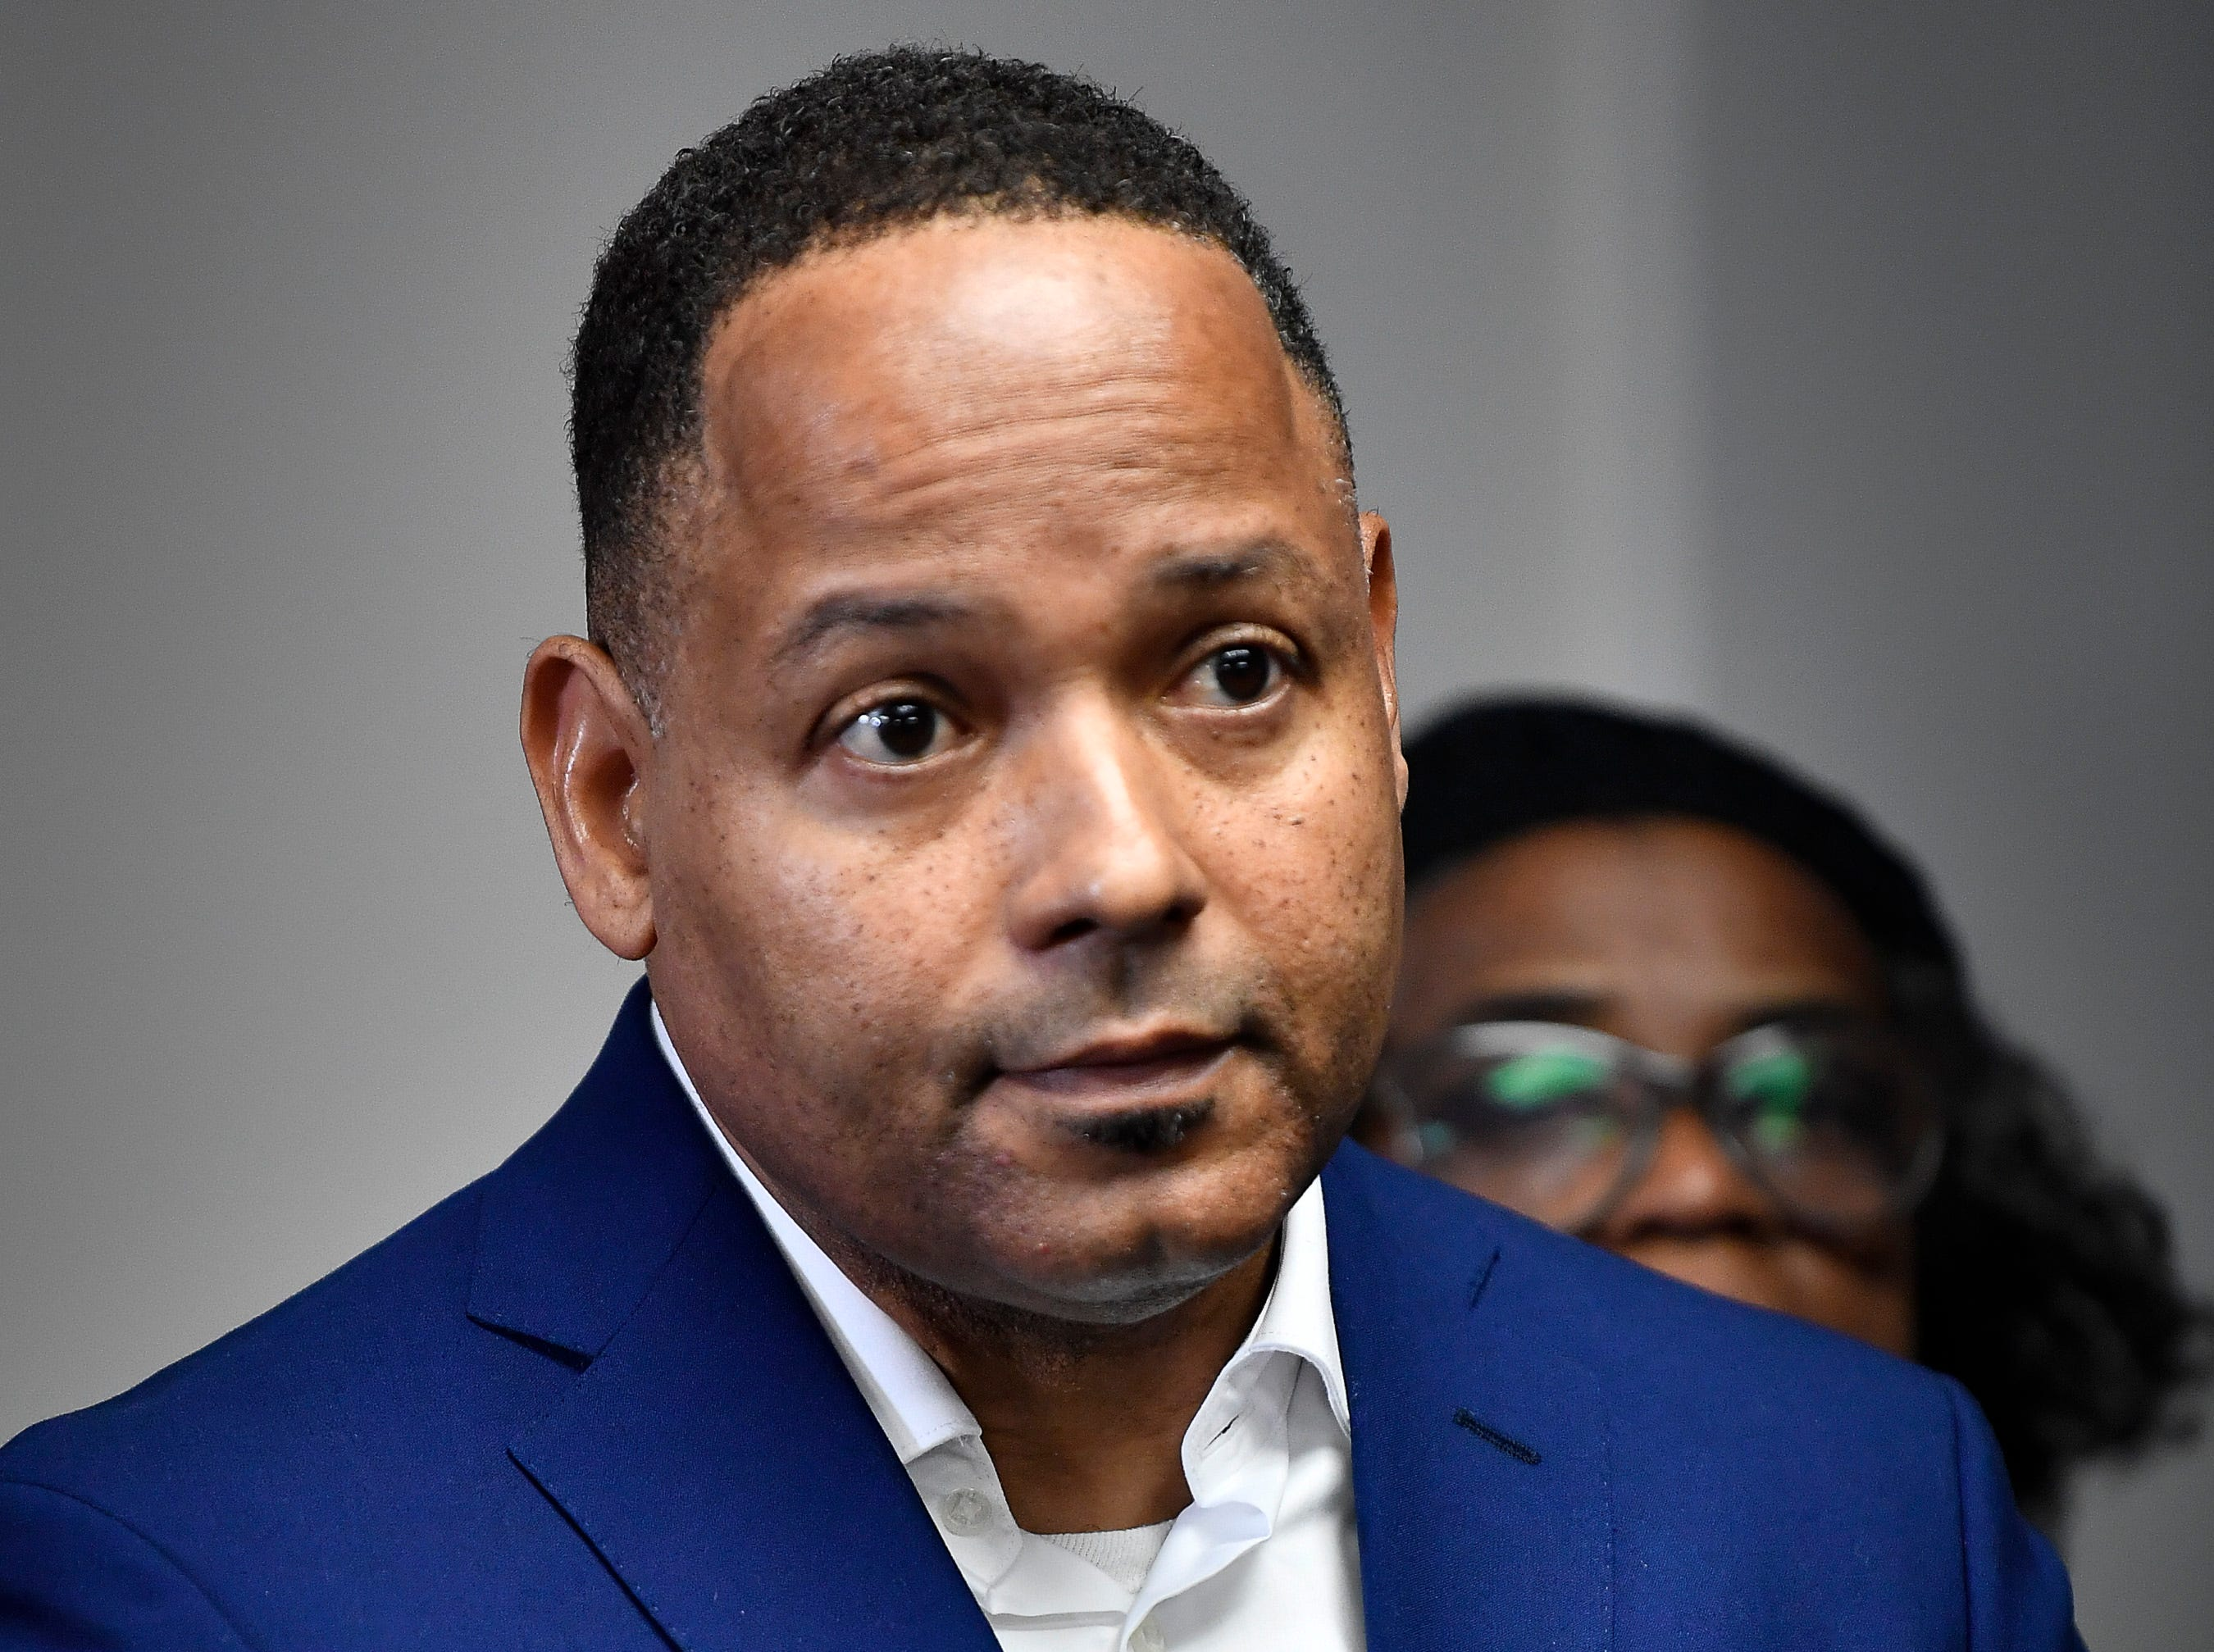 Keith Caldwell president of the local NAACP listens during a press conference asking Gov. Bill Haslam to grant Cyntoia Brown clemency after being convicted of murder when she was 16-years-old in 2004 at the Cordell Hull Building Thursday, Jan. 3, 2019, in Nashville, Tenn.